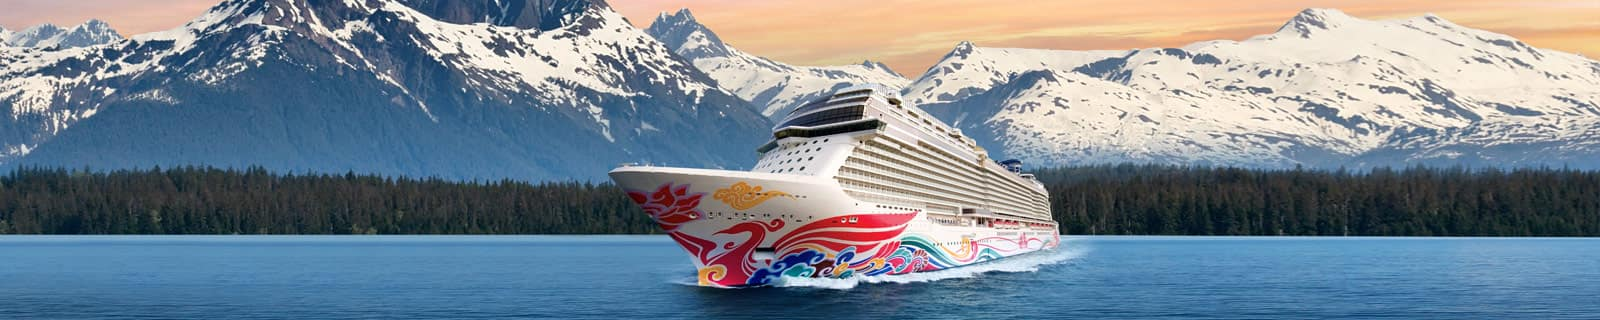 Norwegian Cruise Lines - Free or Reduced Airfare With Alaskan Cruise Balcony+ Booked Today Only